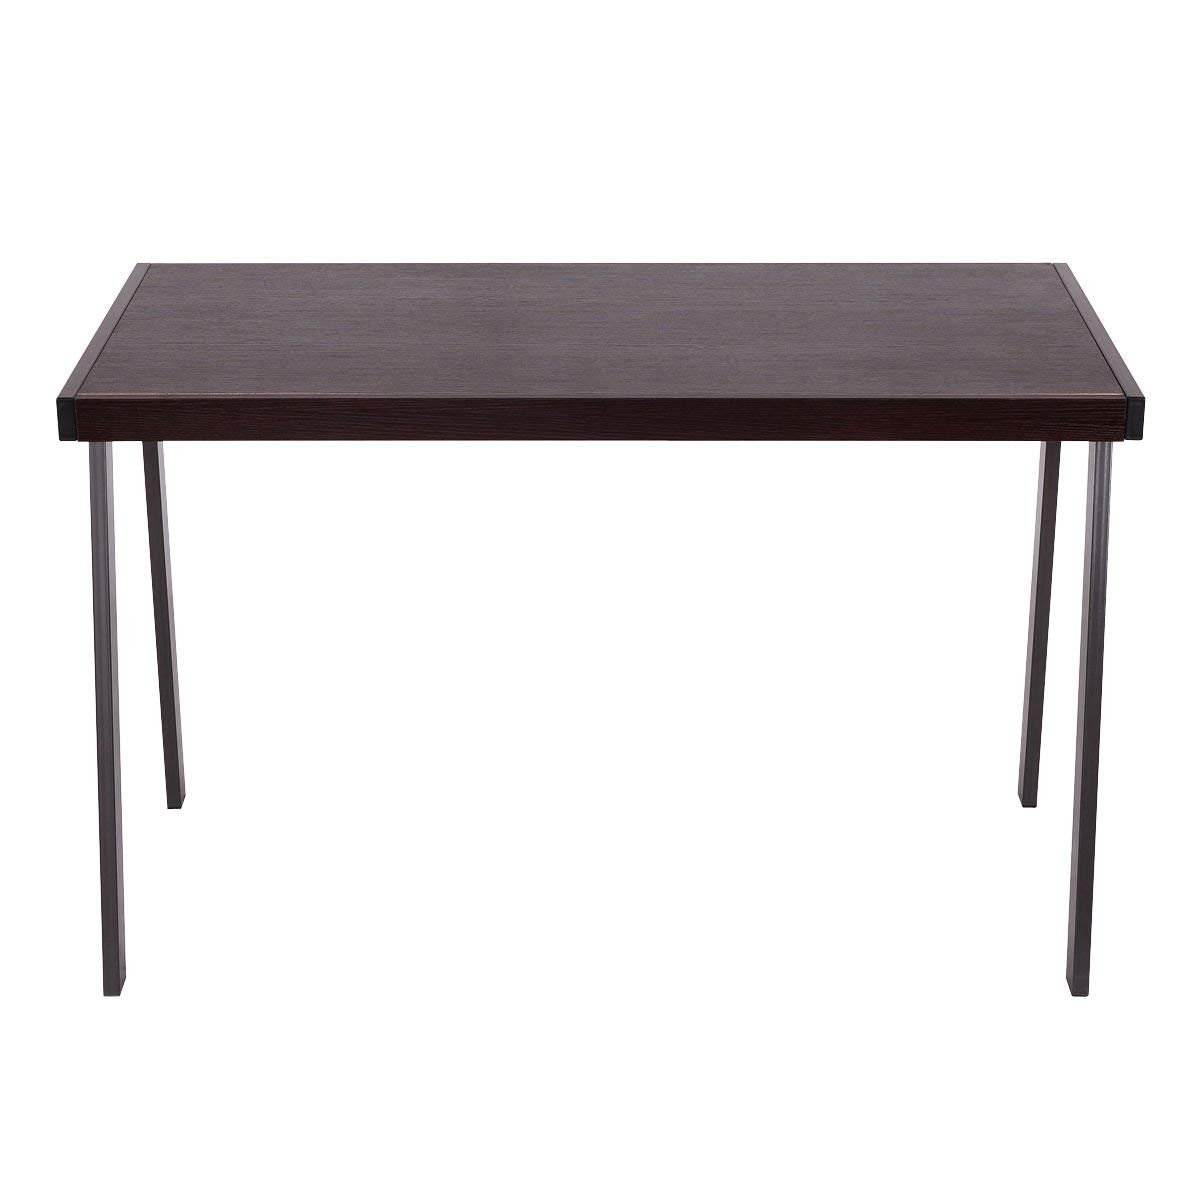 """GHP 47.2""""x23.2""""x30.1"""" Particleboard & Powder-Coated Steel Computer Desk Workstation"""